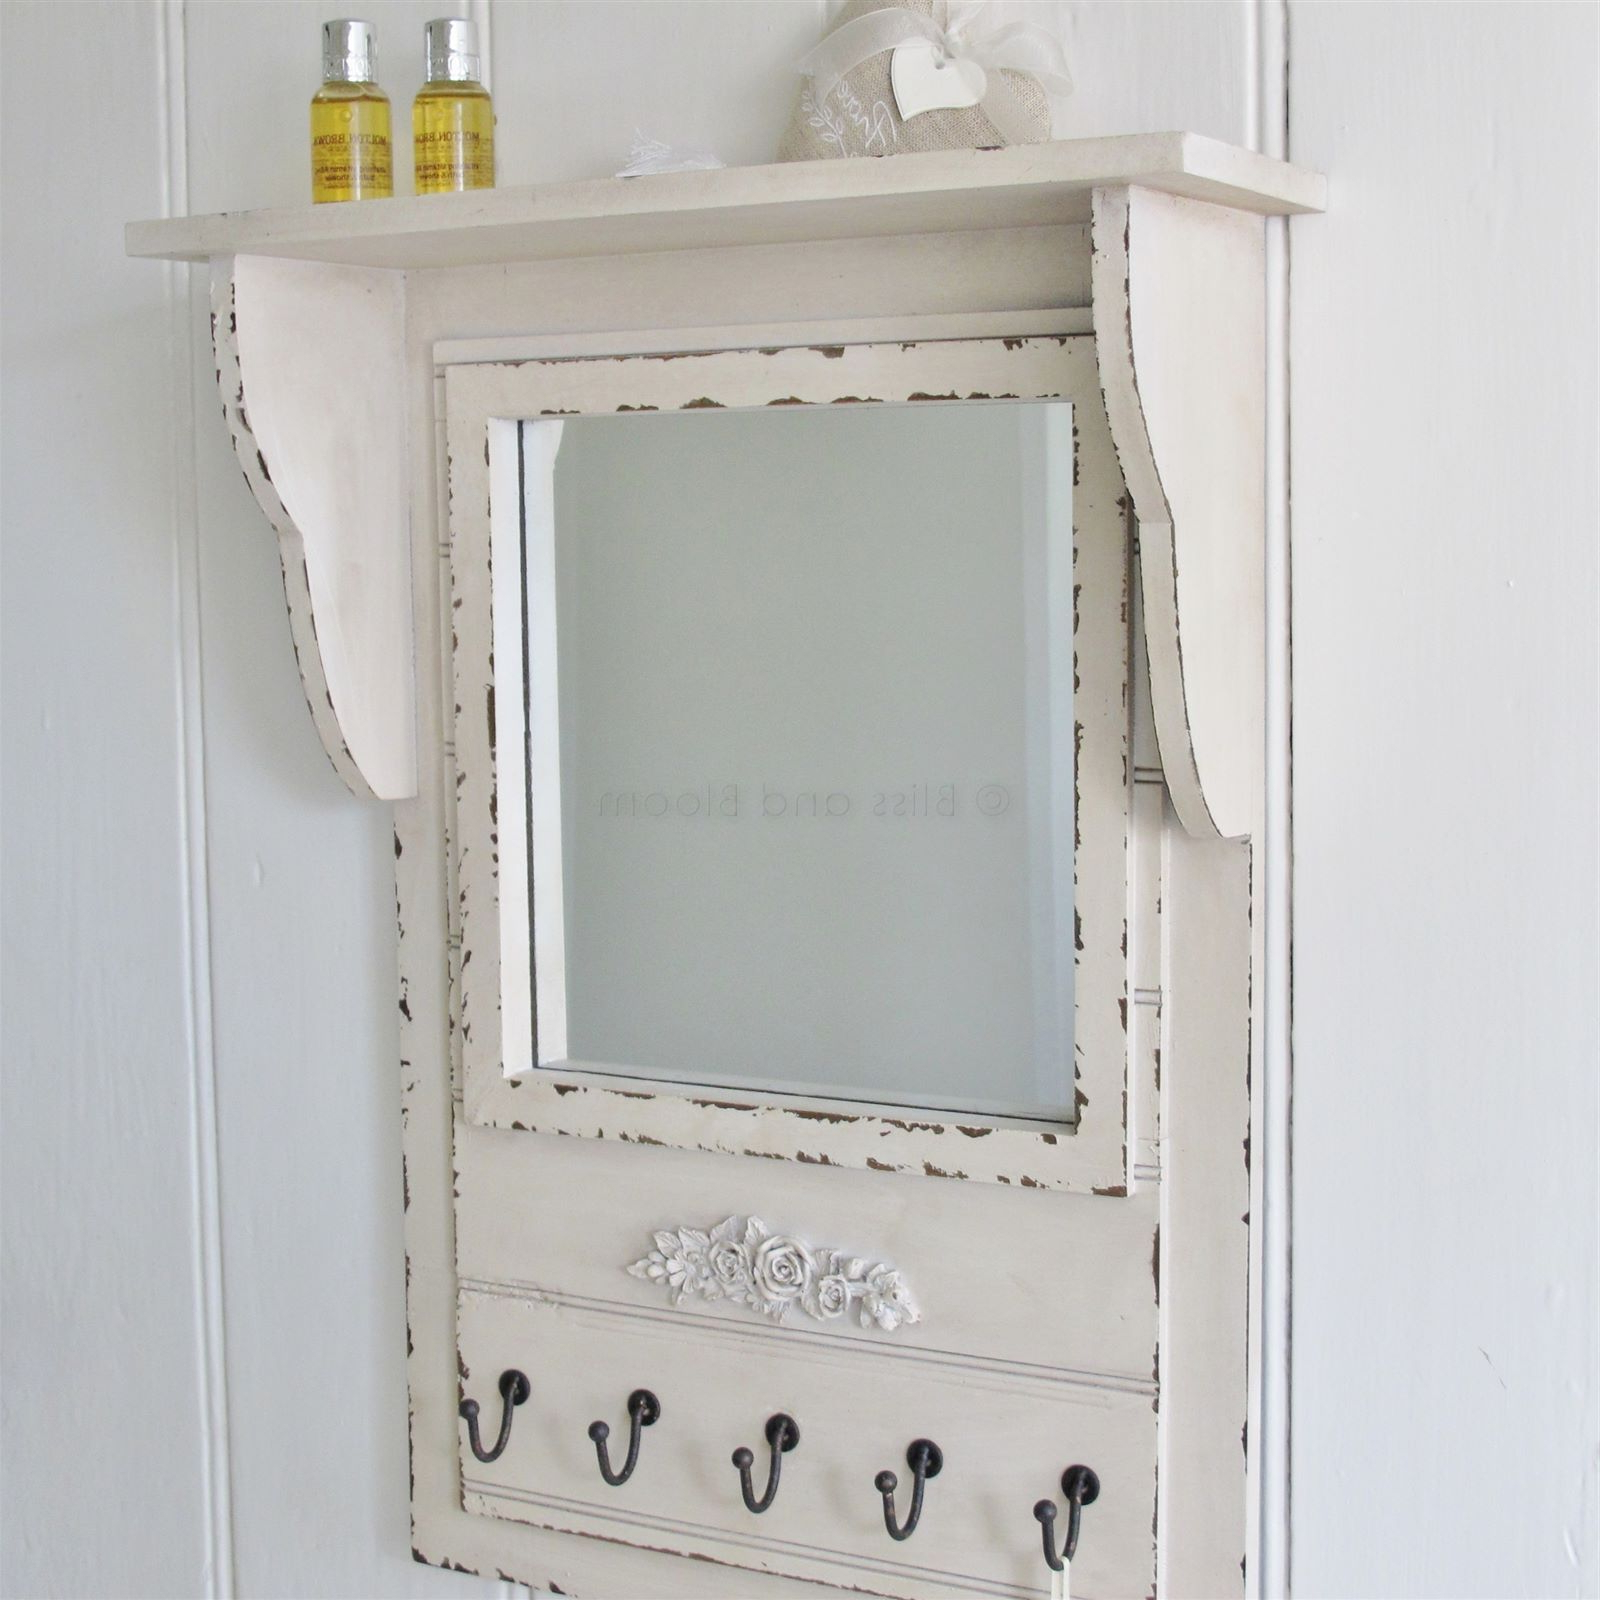 Newest Wall Mirrors With Hooks Intended For Wall Mirror Shelf Hooks (View 10 of 20)